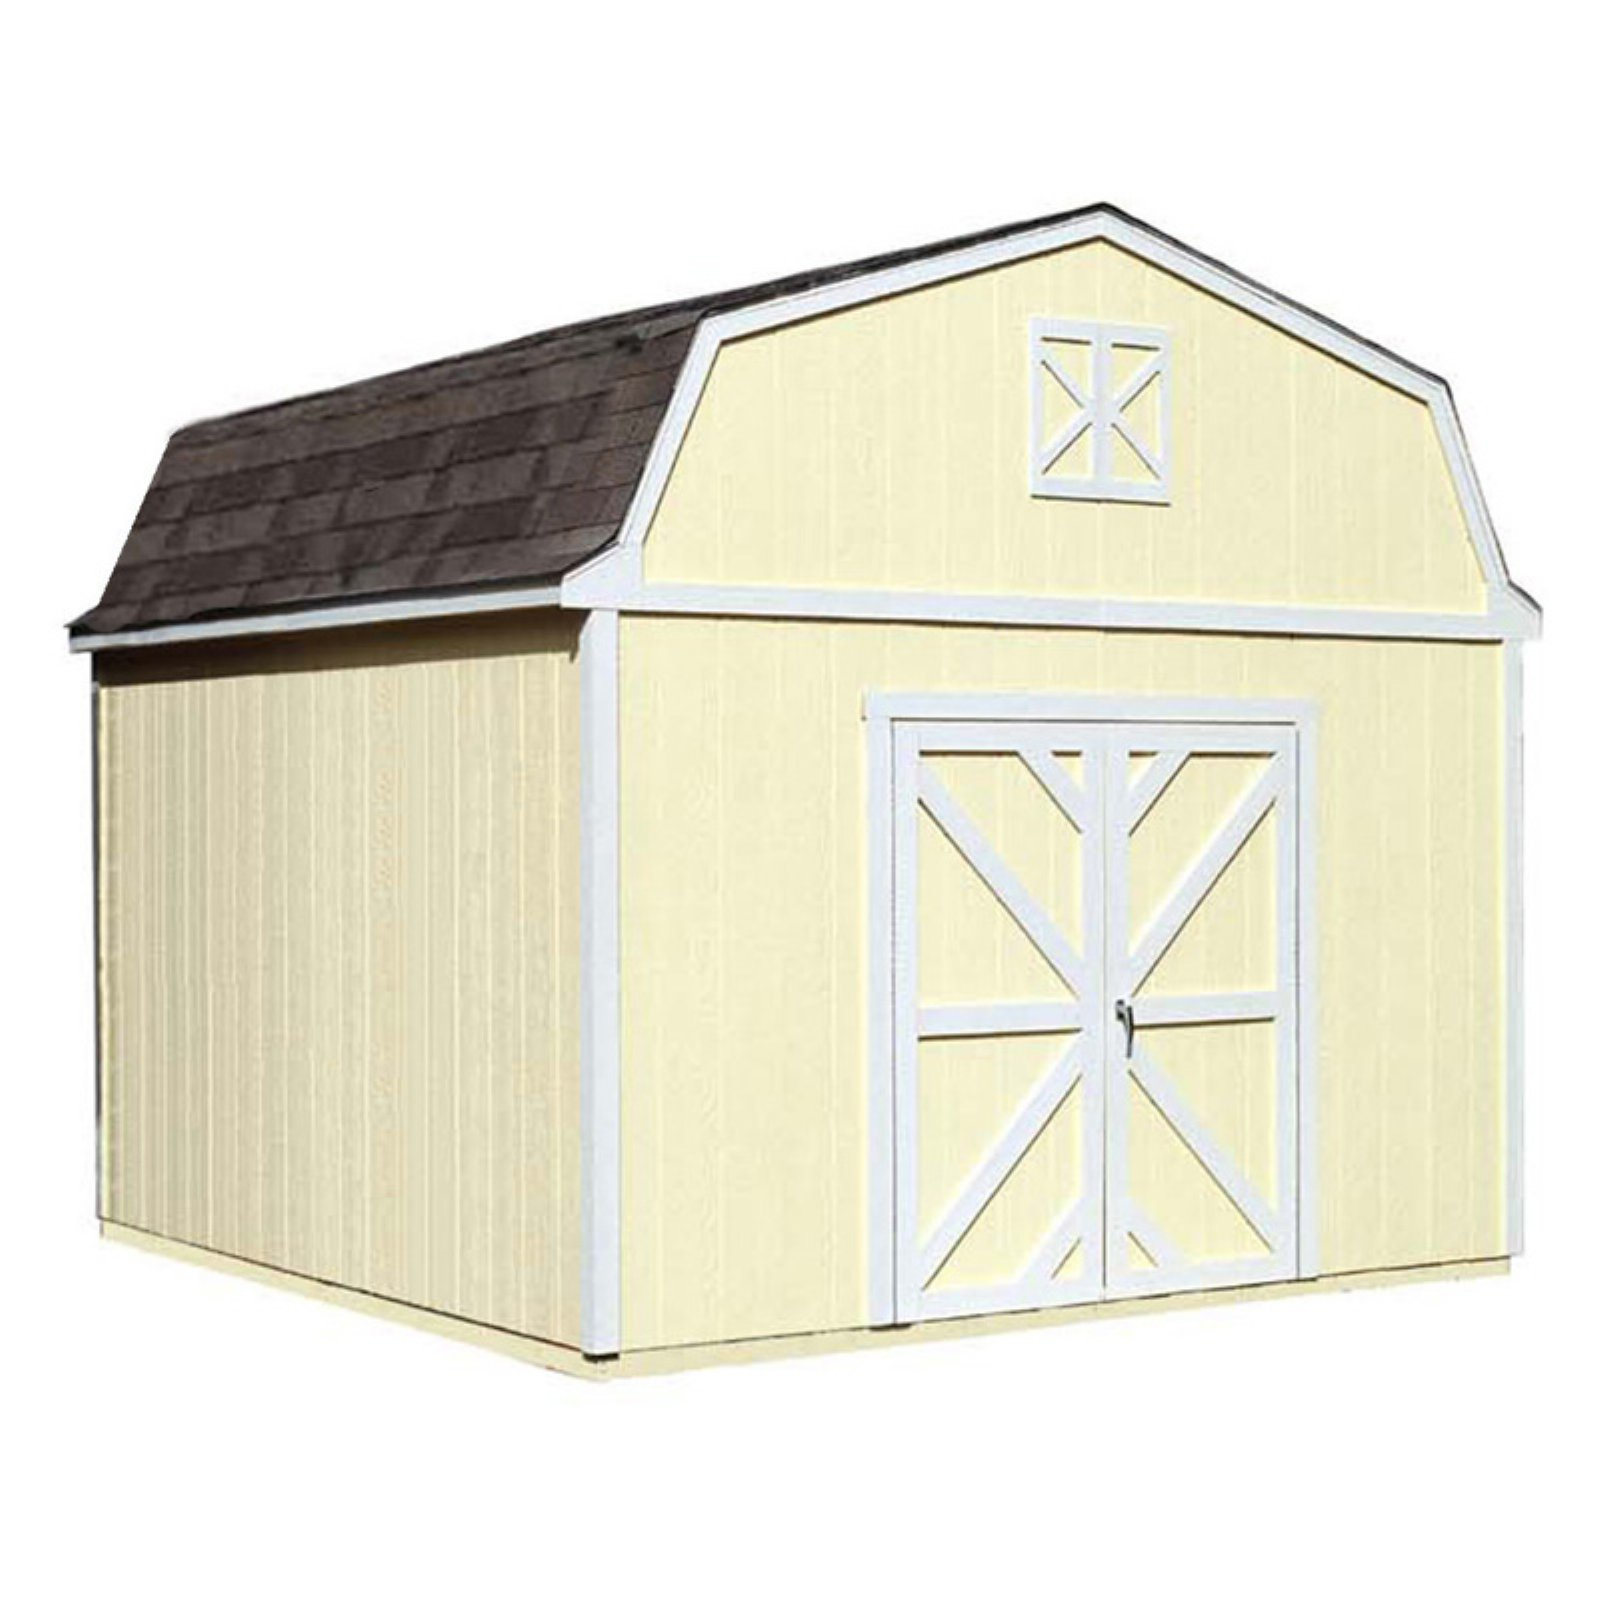 Handy Home Sequoia Storage Shed - 12 x 12 ft.